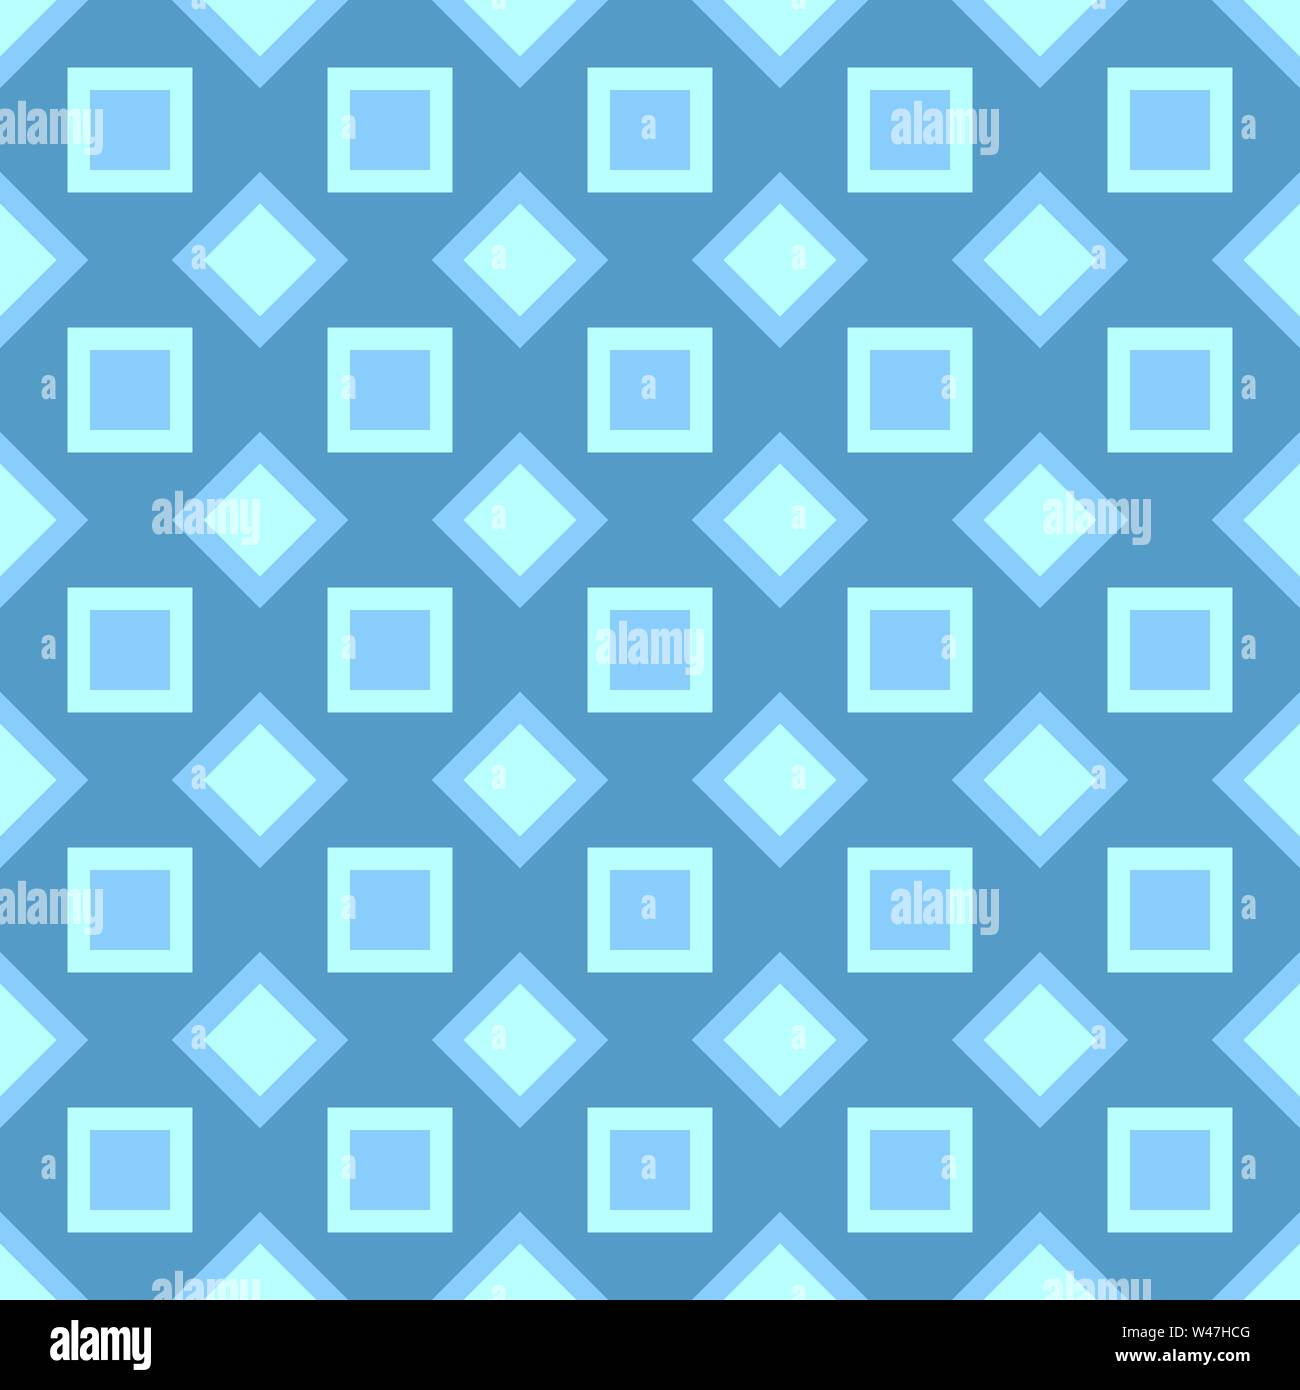 Abstract seamless pattern - vector square design background - Stock Image